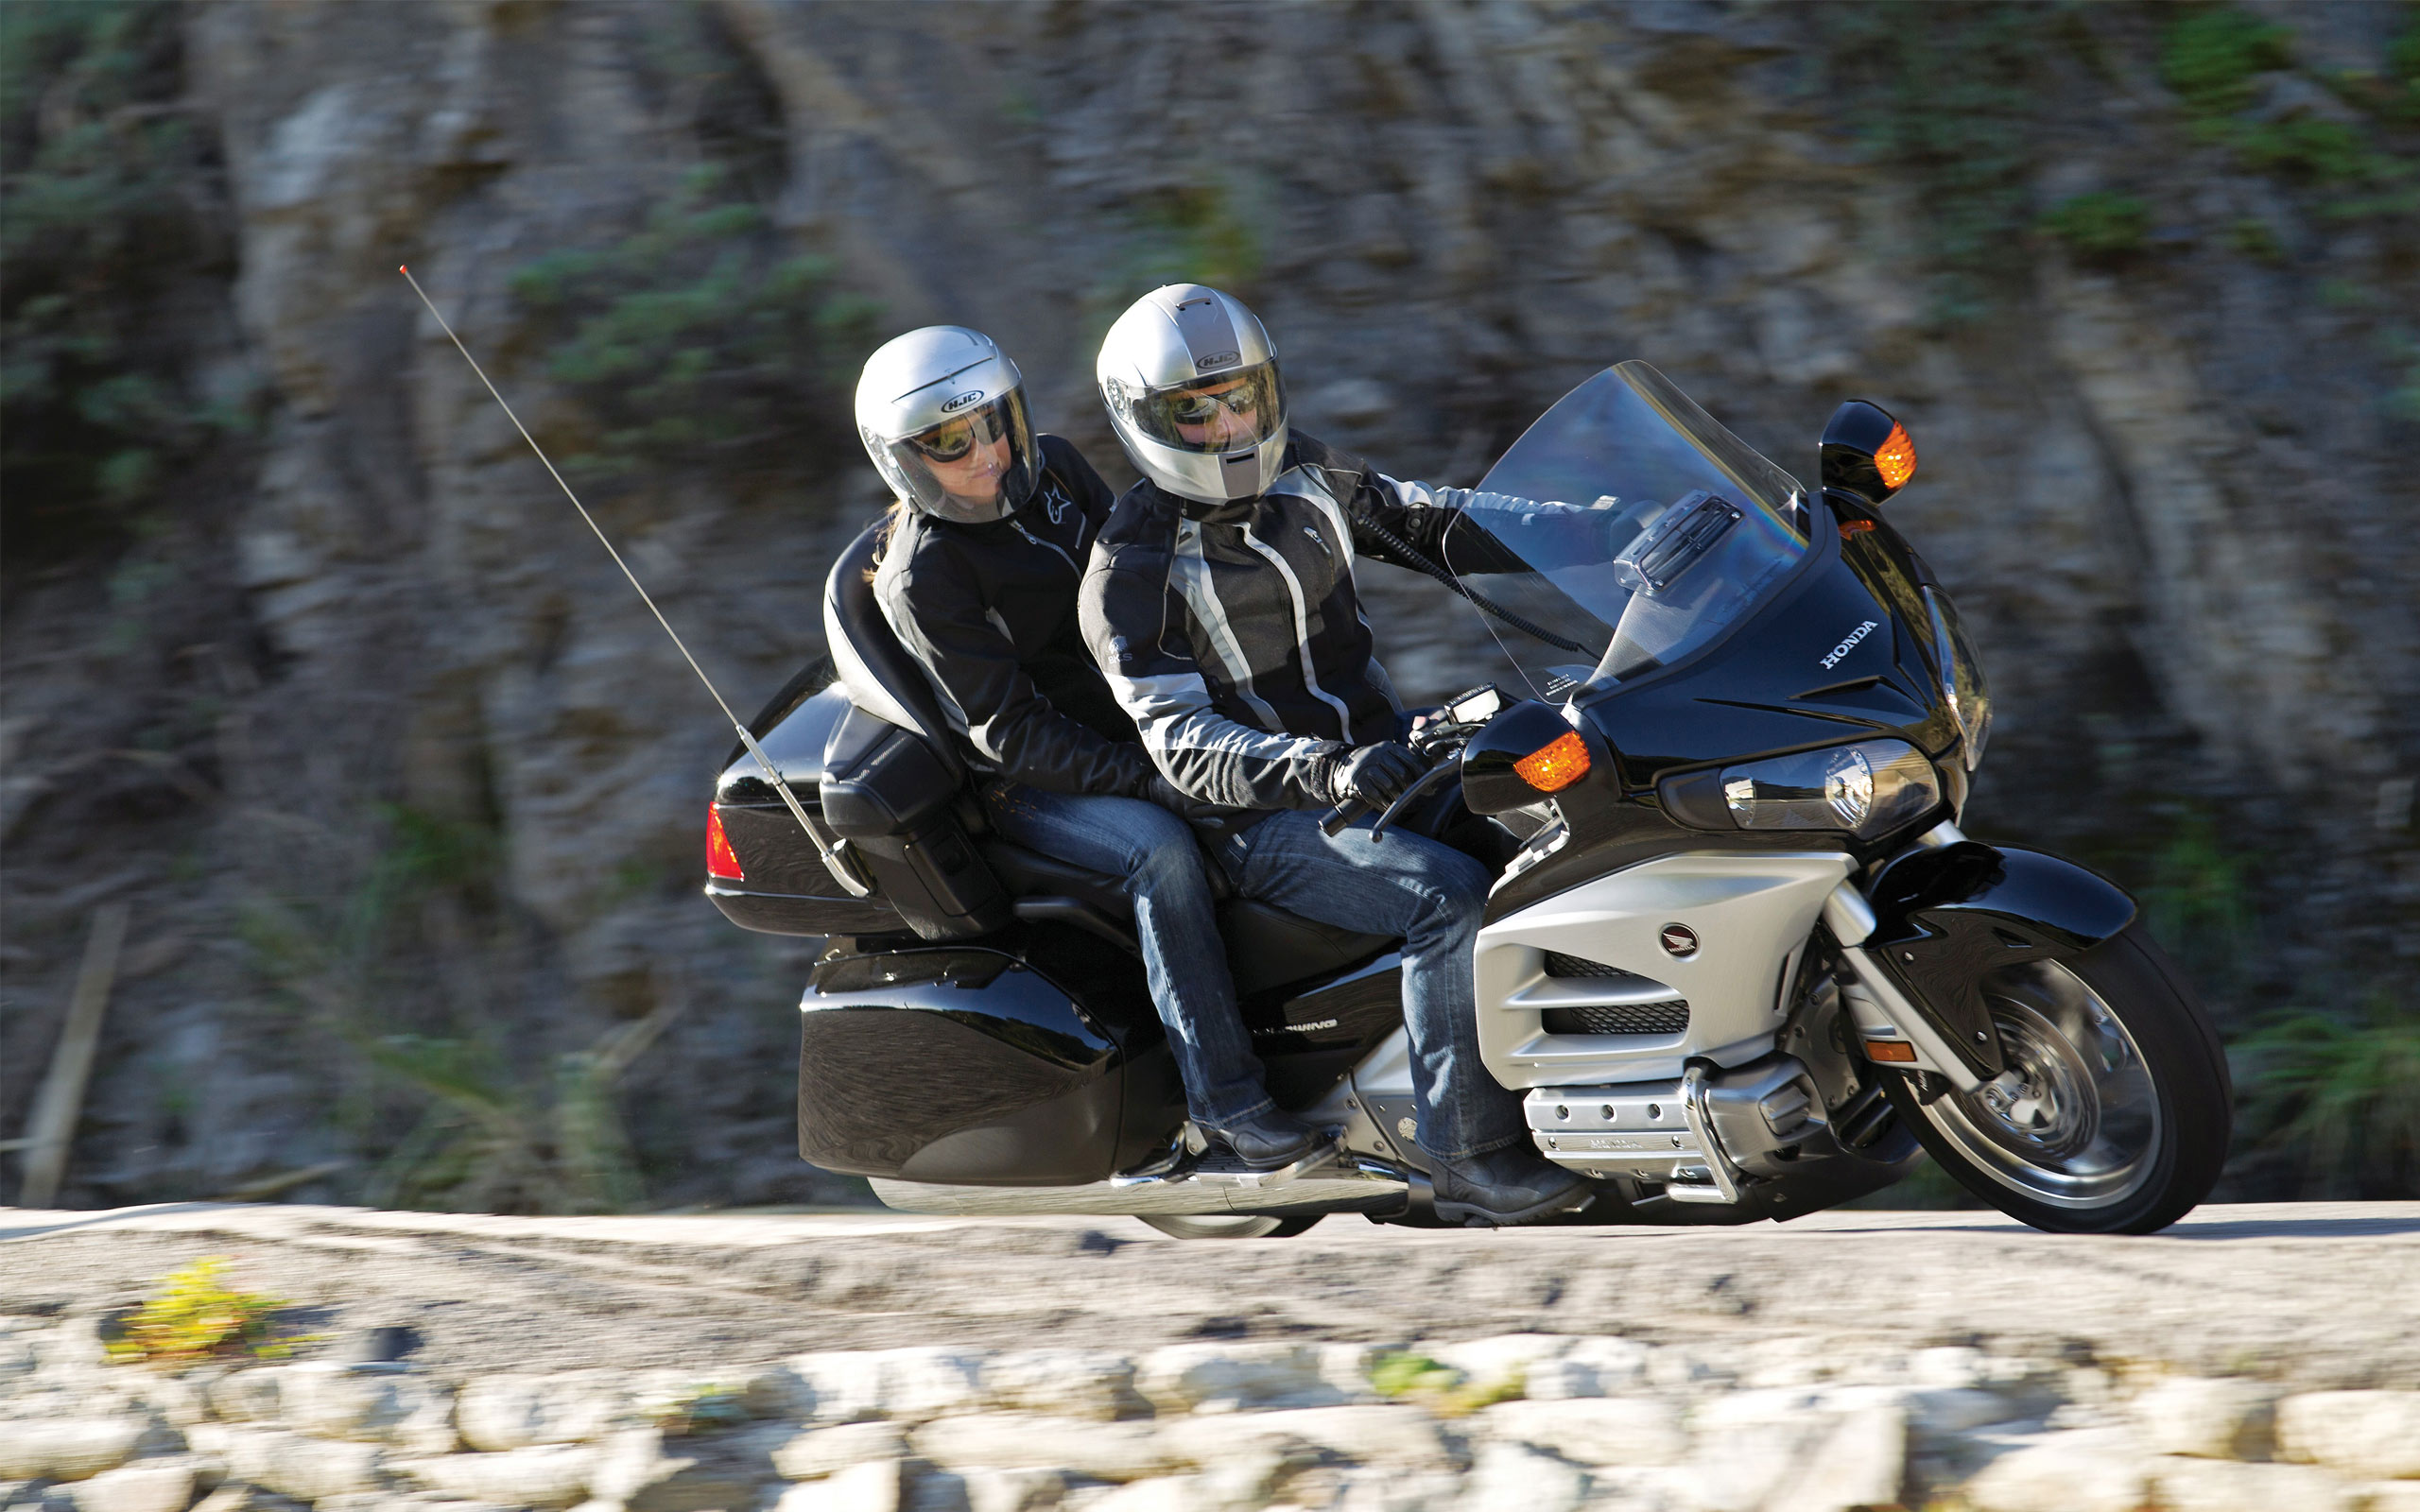 pc wallpaper Honda Goldwing Touring 2560x1600 px